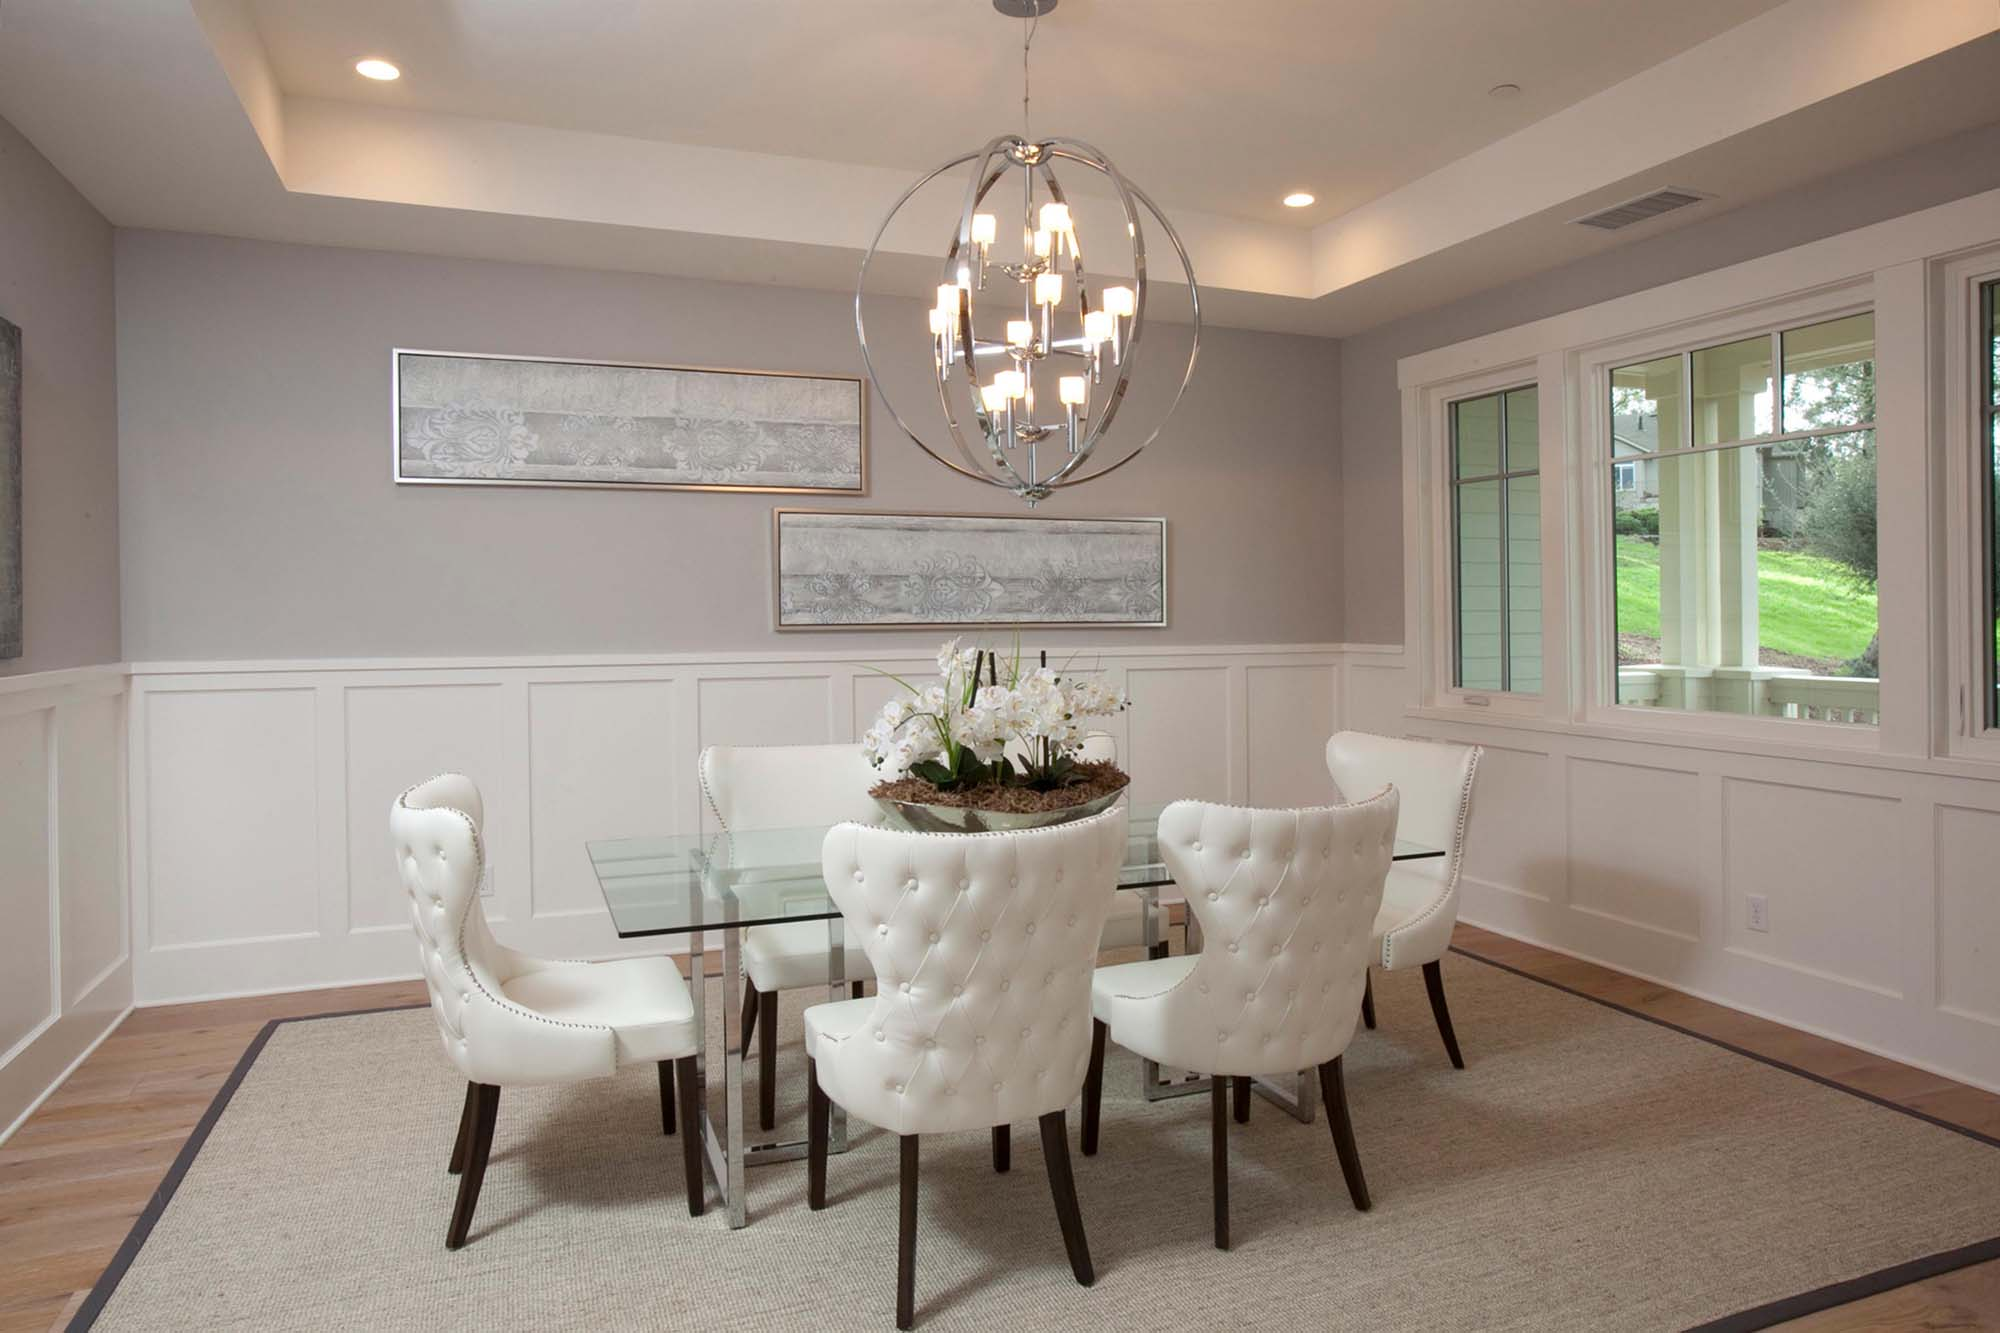 Modern living room with sets of chairs, table and chandelier